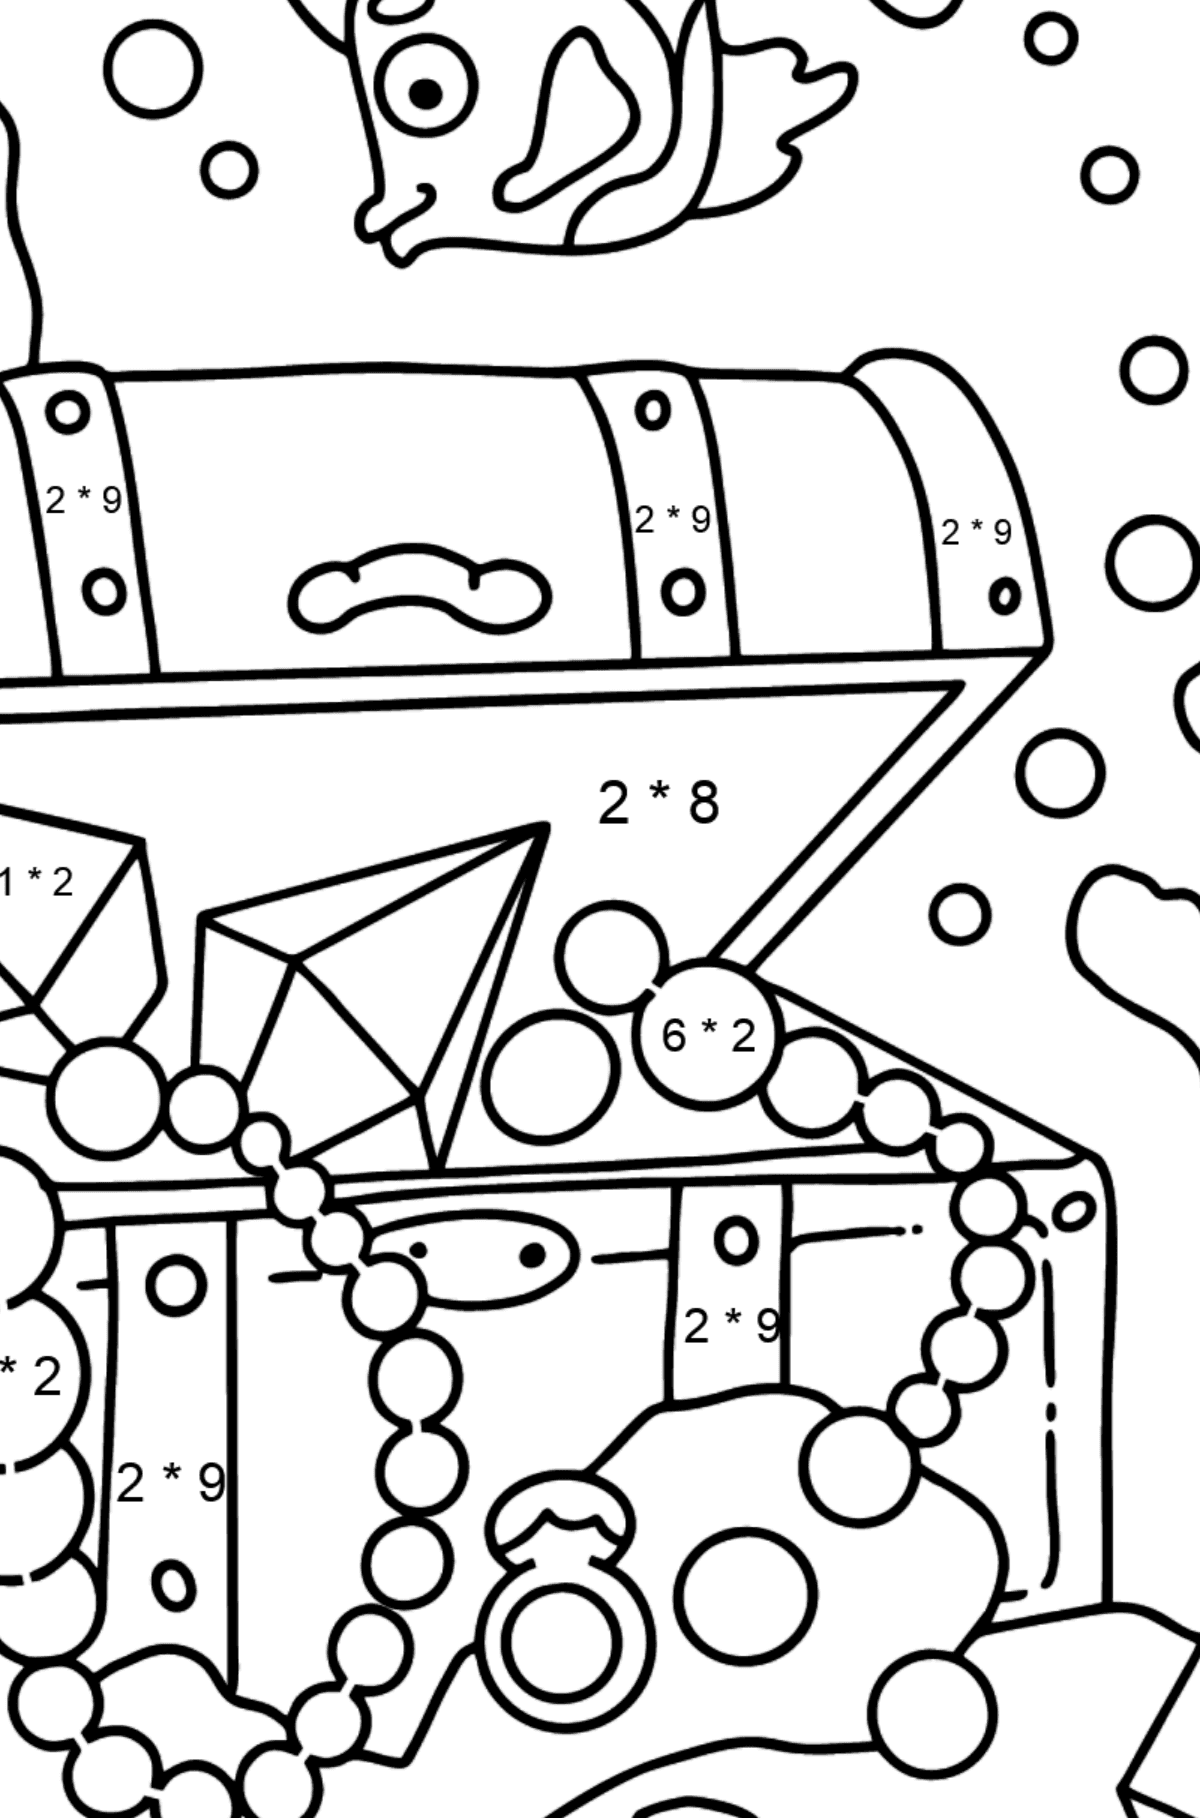 Coloring Page - A Fish is Swimming Around a Pirate's Chest - Math Coloring - Multiplication for Kids